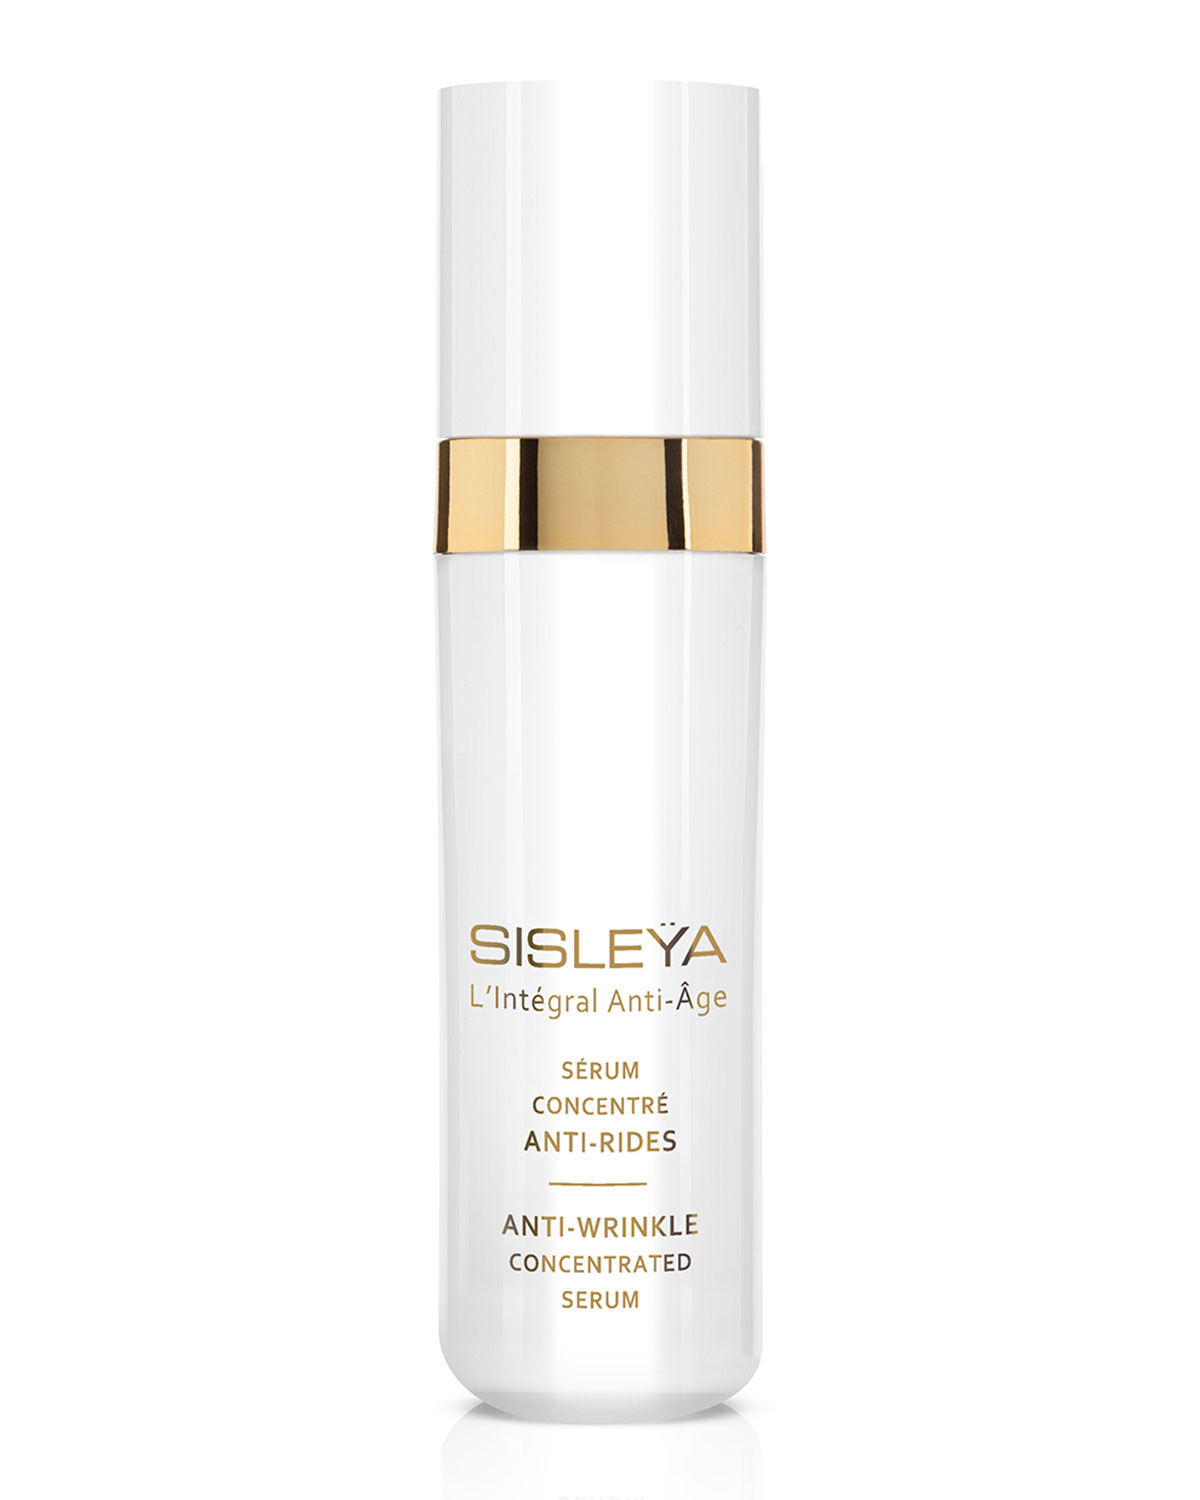 Sisley Paris SISLE & #255A L'INTEGRAL ANTI-AGE ANTI-WRINKLE CONCENTRATED SERUM